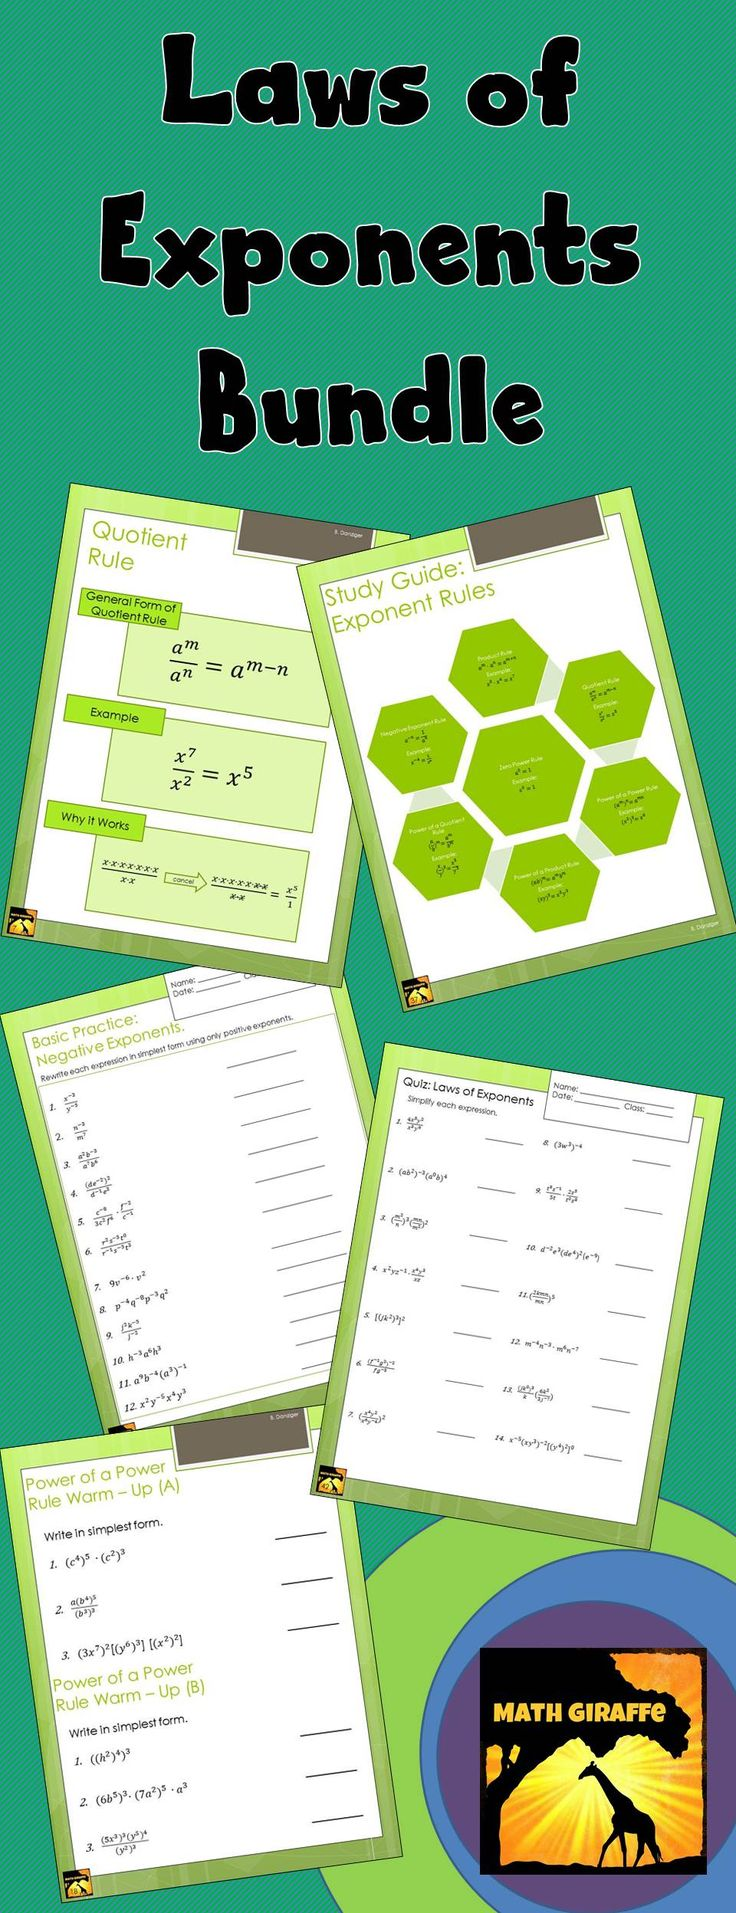 Worksheets Product Rule And Quotient Rule Exponents Worksheet 17 best images about rules of exponents on pinterest simplifying exponent 43 pages plus answer keys graphic organizers with unique why it